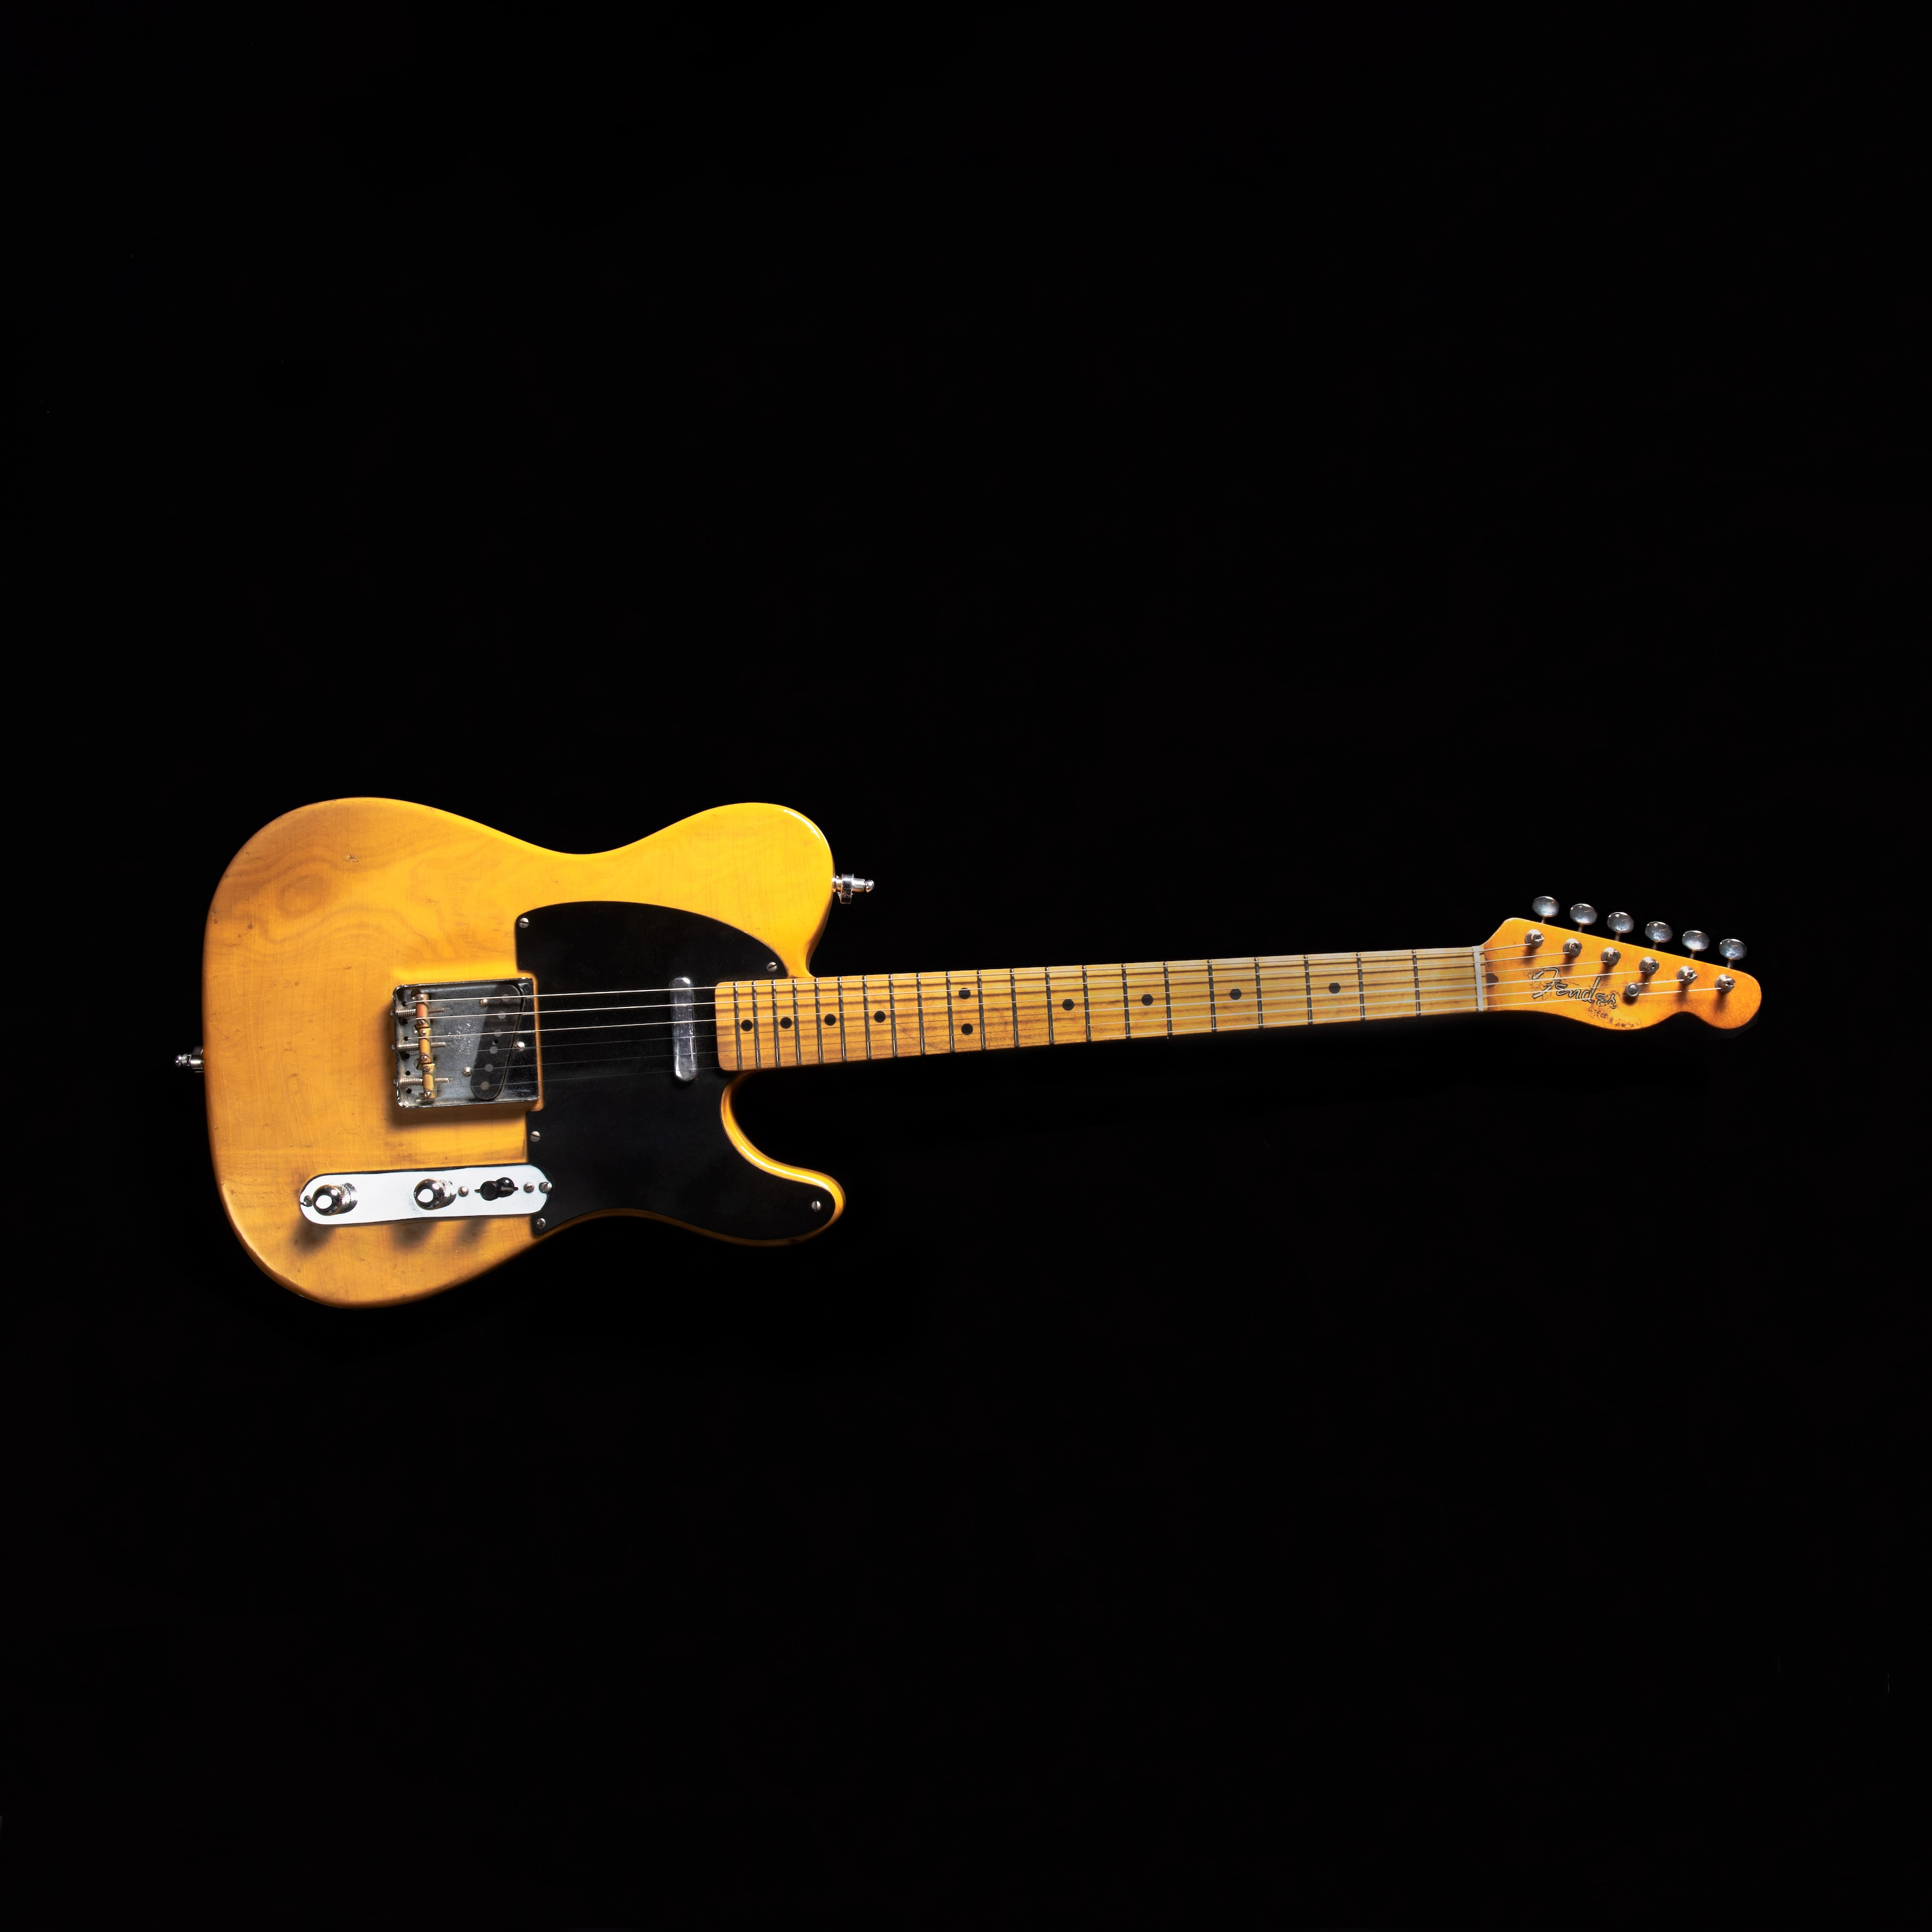 A colour photograph of Lorraine Segato's 1983 re-issued Telecaster fender guitar.